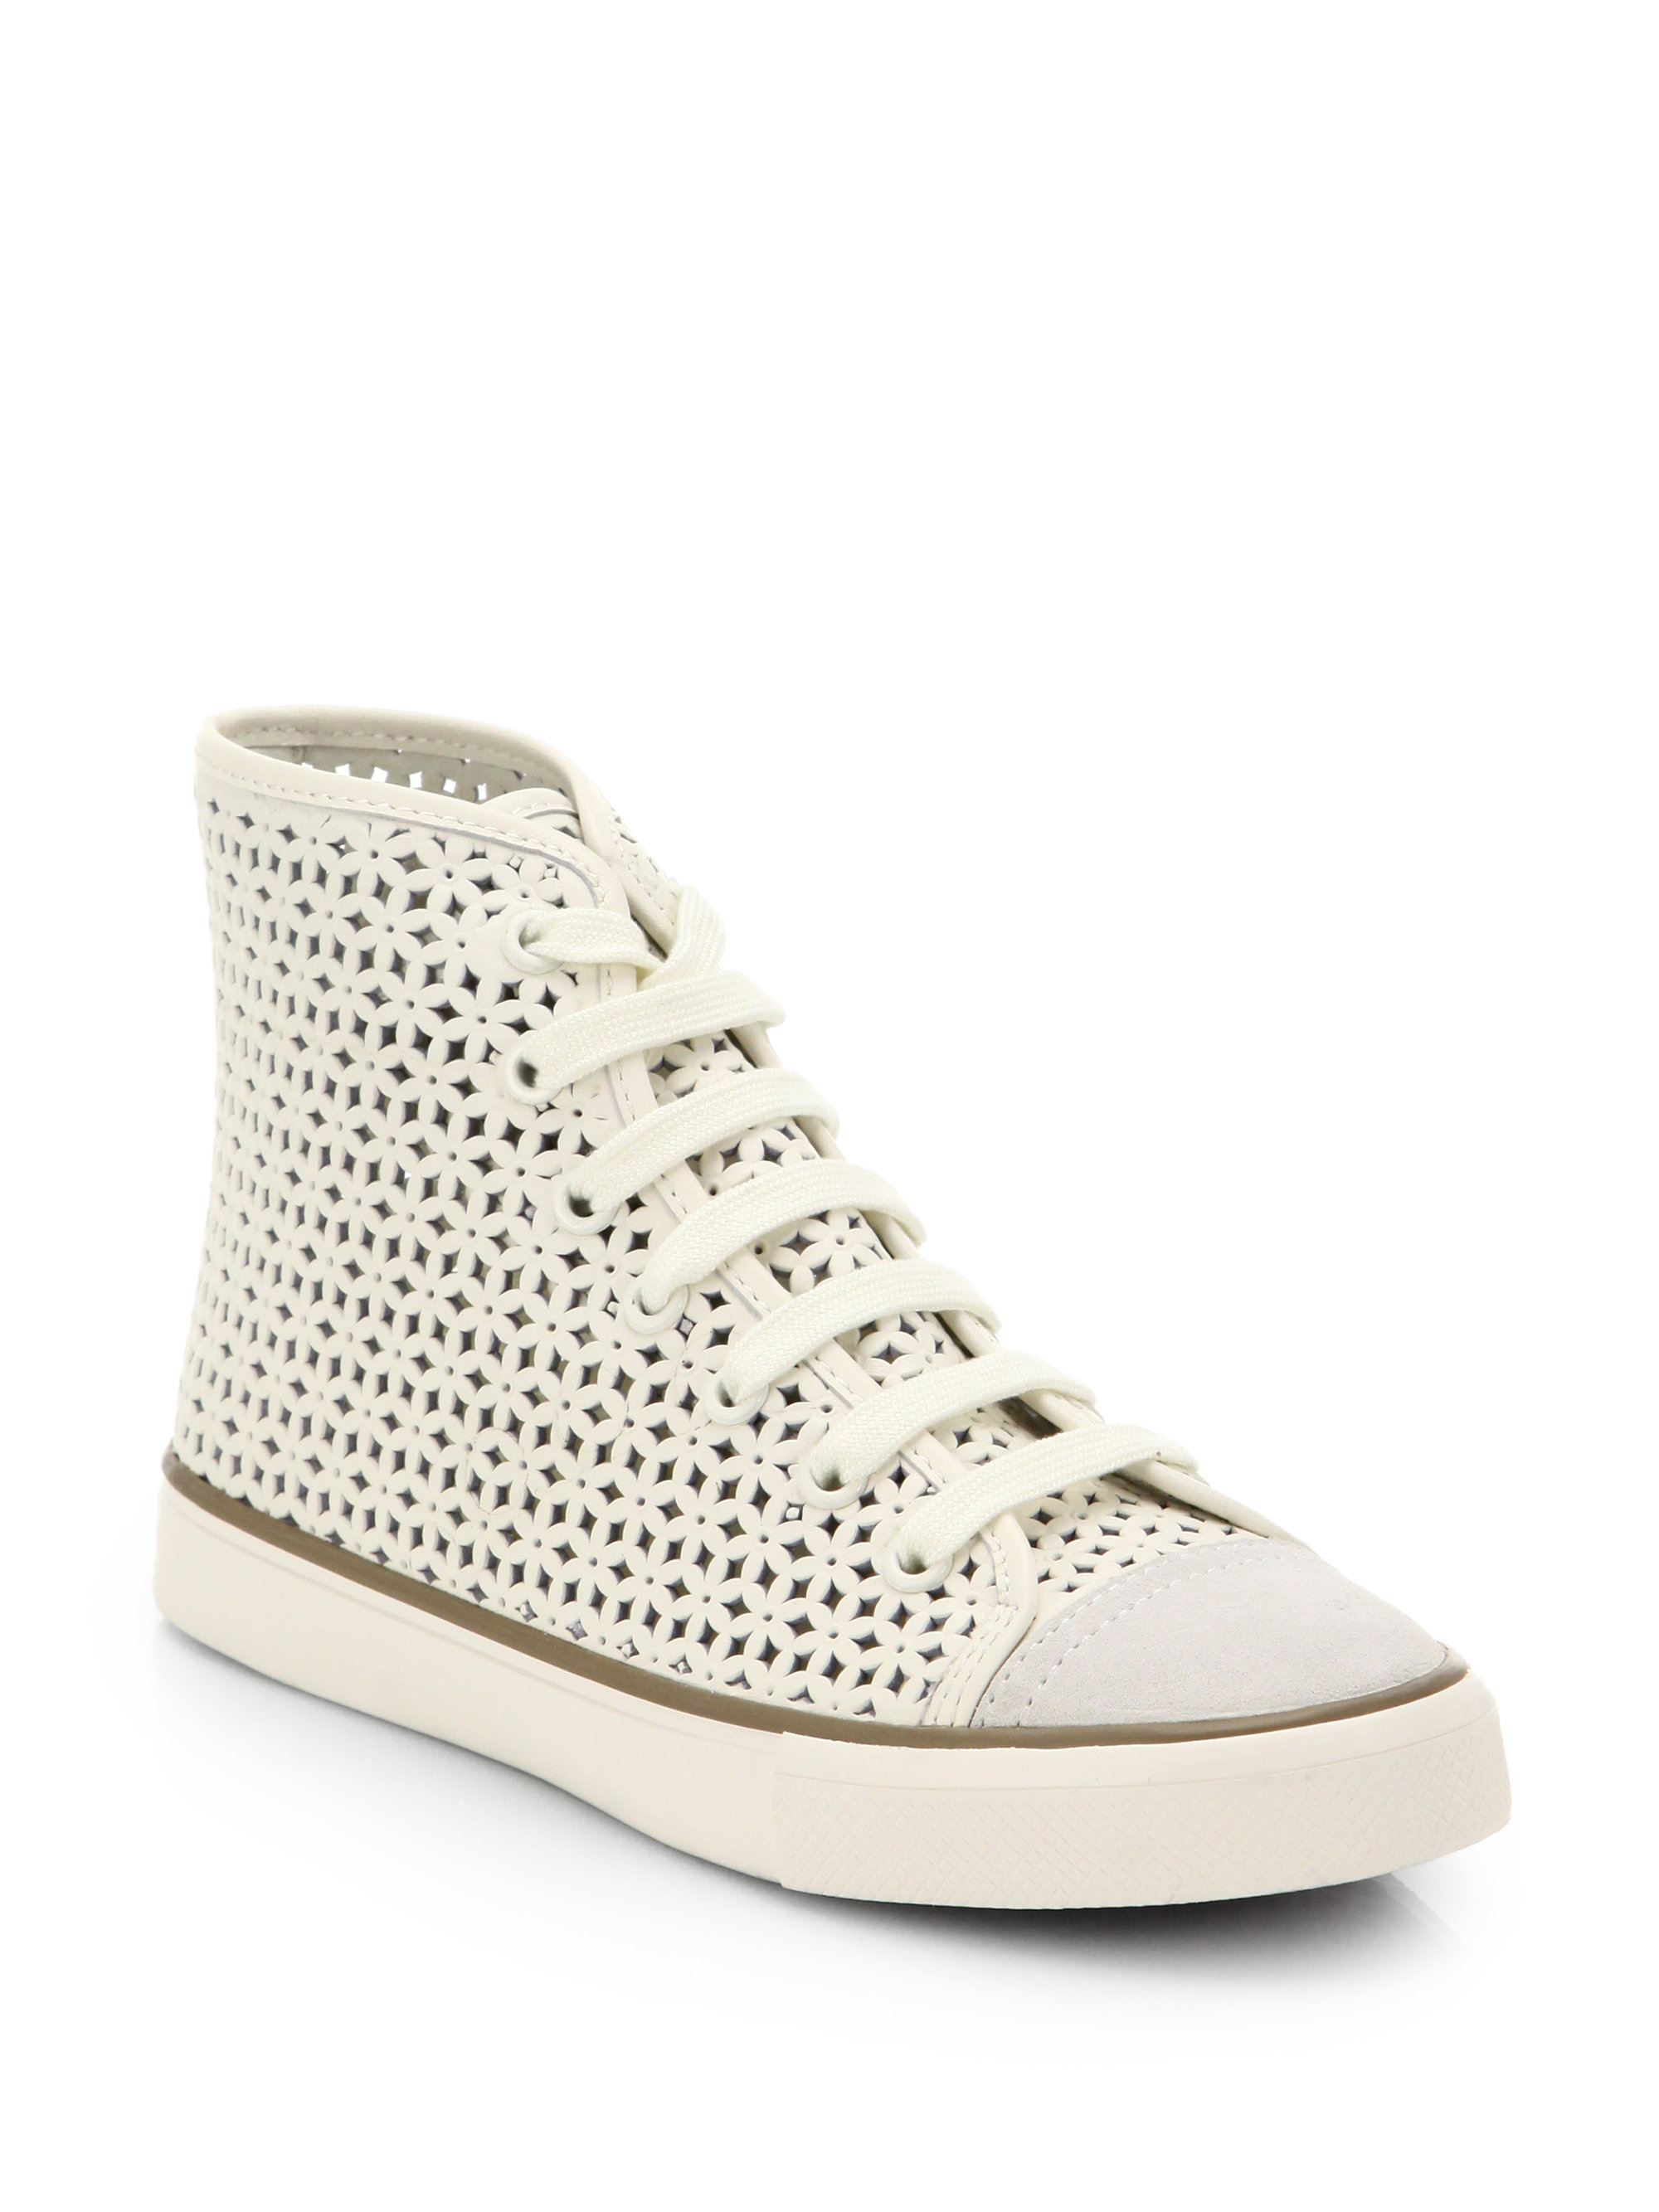 Tory Burch Laser Cut High-Top Sneakers great deals cheap online 5laly